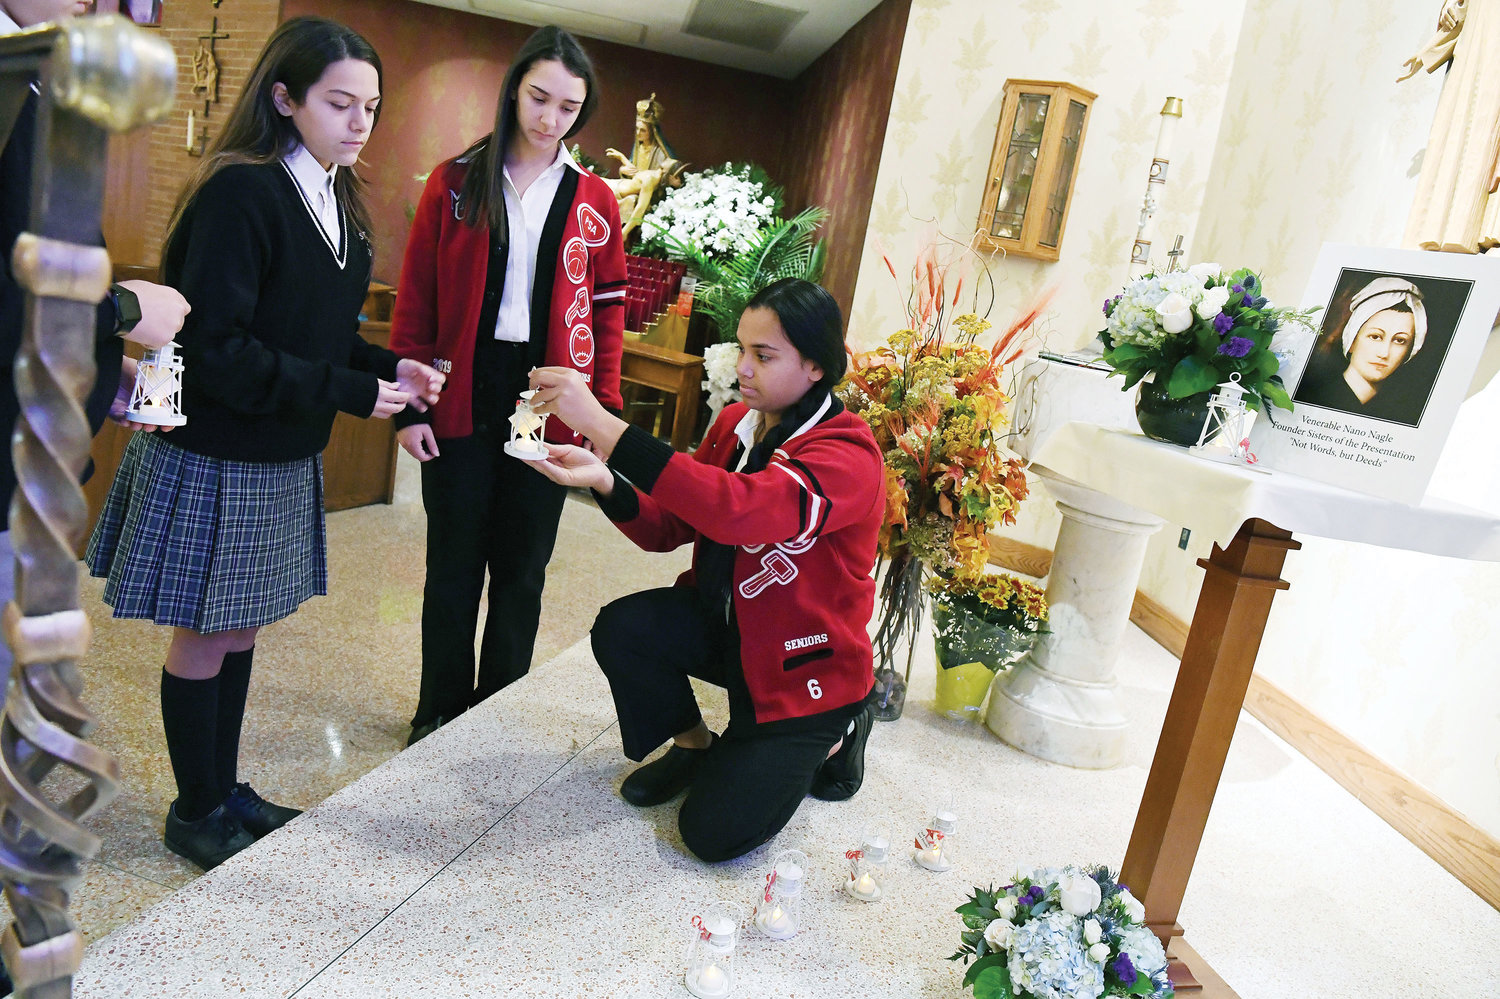 "Elizabeth Brown, a senior at Moore Catholic High School on Staten Island, alongside her peers, places lanterns at the base of a shrine to Venerable Honora ""Nano"" Nagle, foundress of the Sisters of the Presentation of the Blessed Virgin Mary. Moore Catholic hosted a Mass Nov. 18 at Our Lady of Pity Church on Staten Island in honor of Venerable Nagle's 300th birthday."